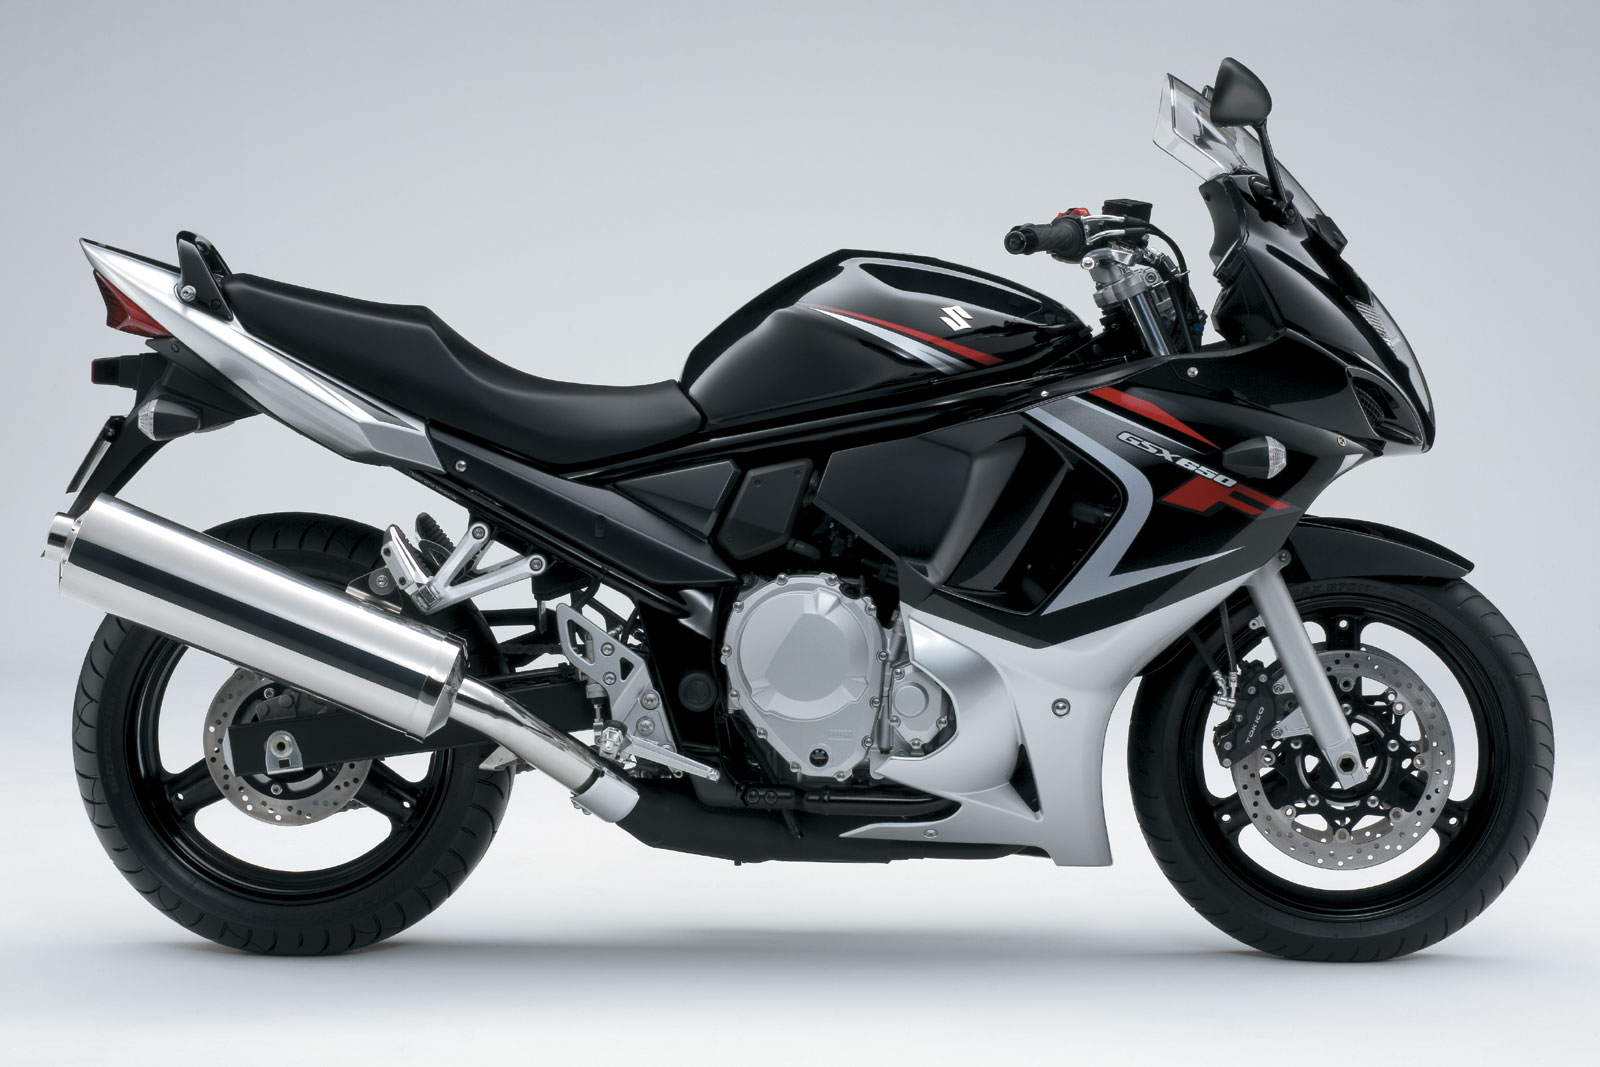 suzuki gsx 650f specs 2007 2008 autoevolution. Black Bedroom Furniture Sets. Home Design Ideas